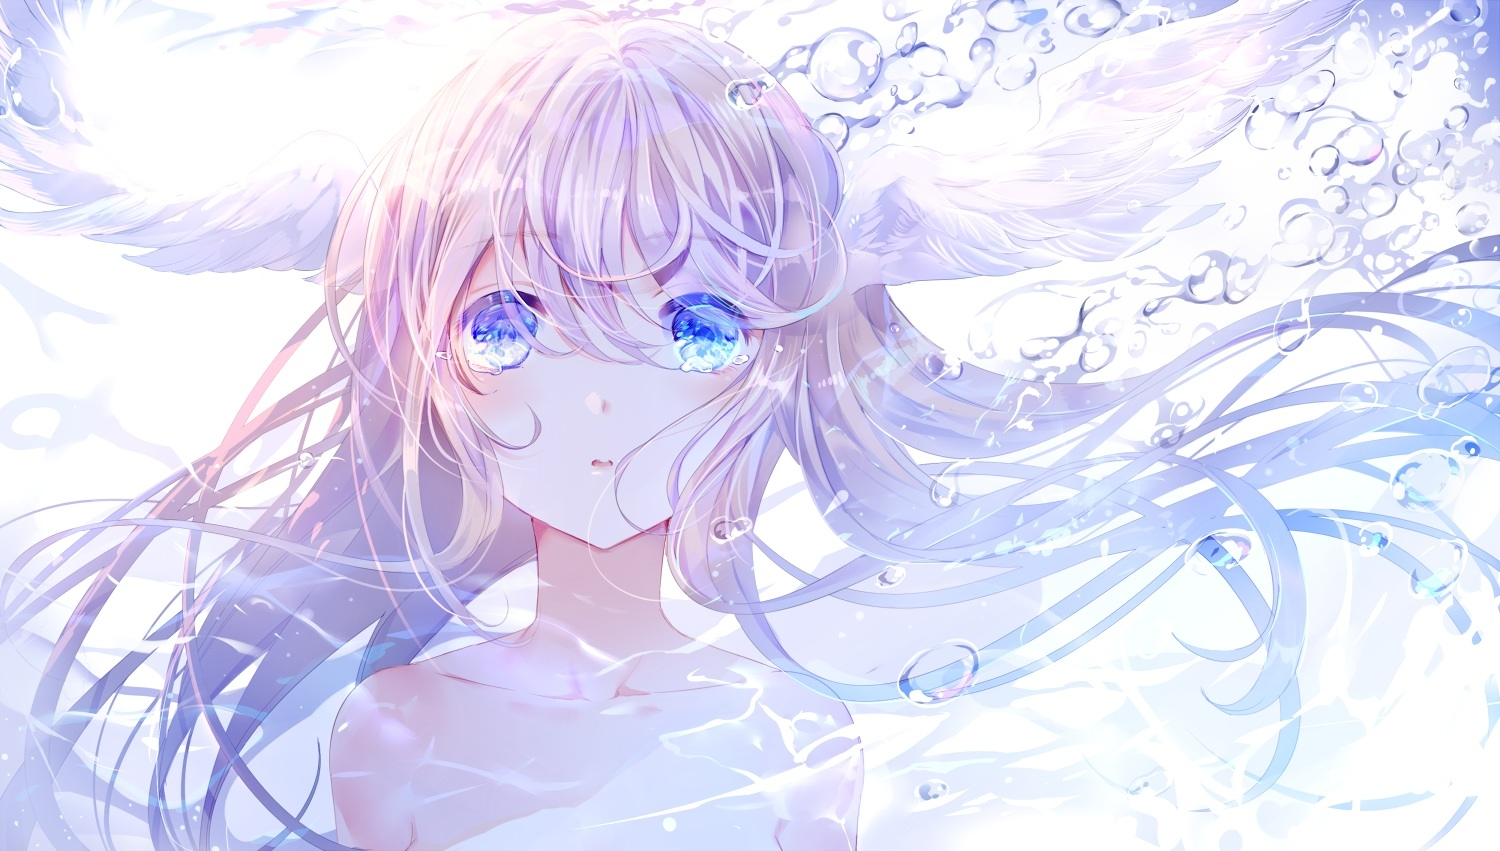 Pretty Anime Falling Angel Wallpapers 1920x1080 Hd Download 3840x2160 Anime Girl Crying Tears Wings